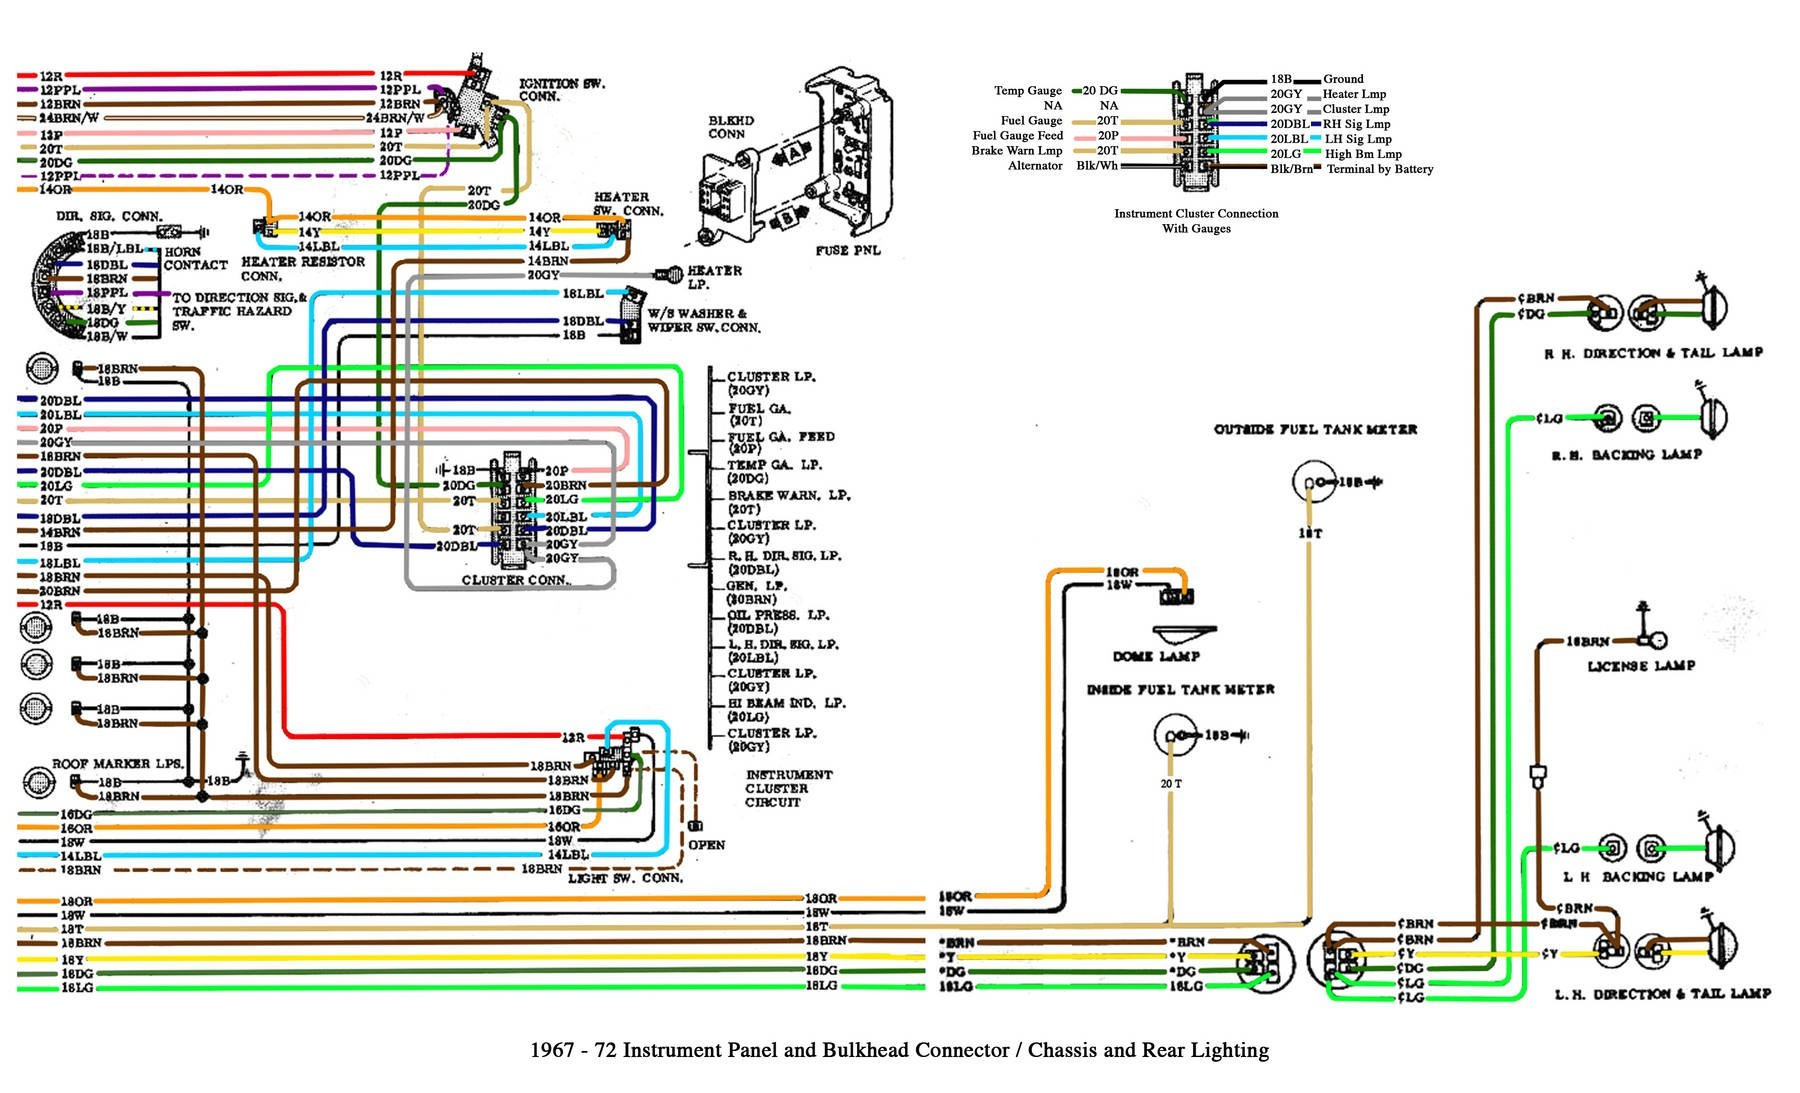 wiring diagram for 1995 chevy silverado - wiring ddiagrams home menu-insist  - menu-insist.brixiaproart.it  brixia pro art